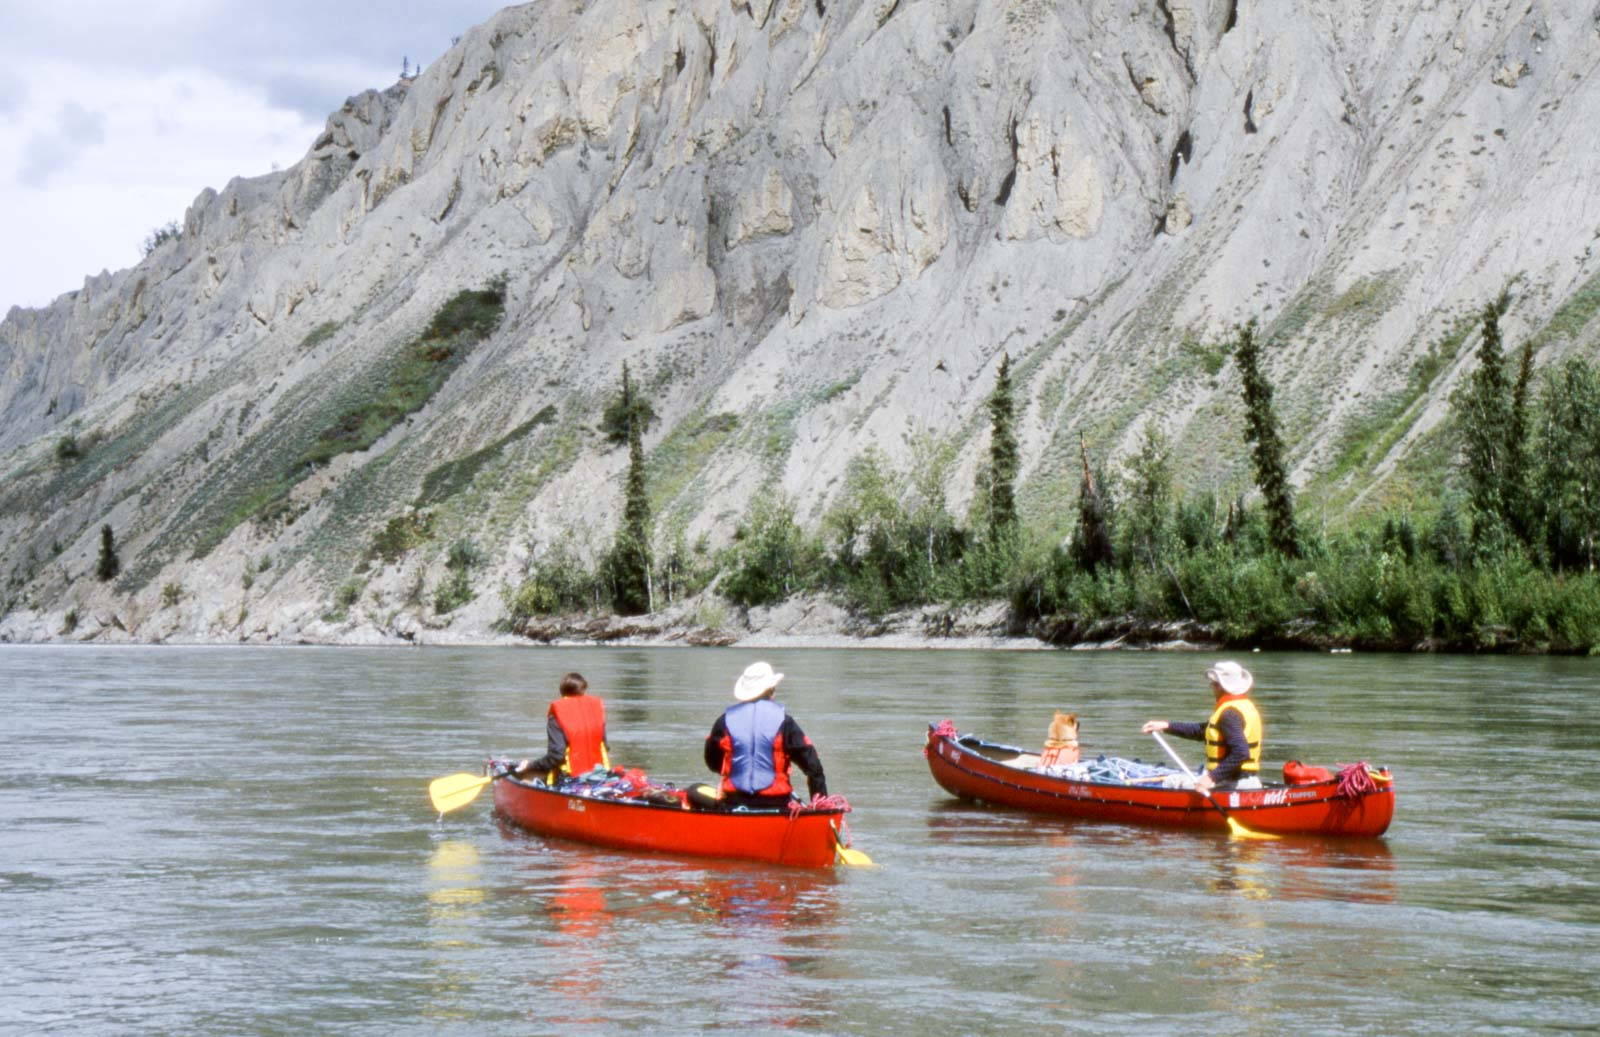 Pelly River - The Voyageur's Northwest Route